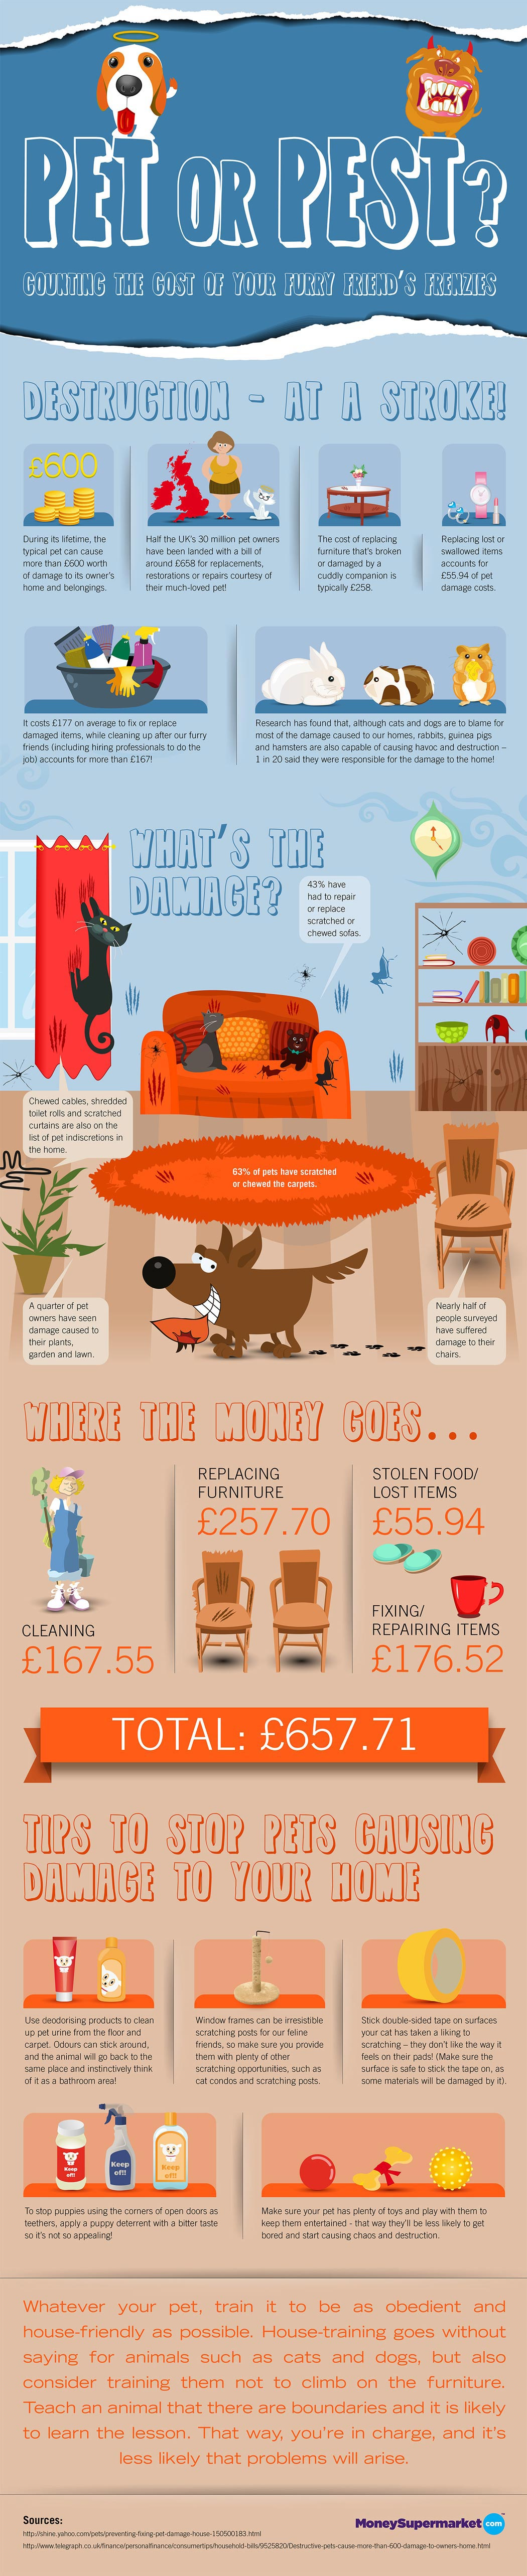 Pet Proof Home-Infographic